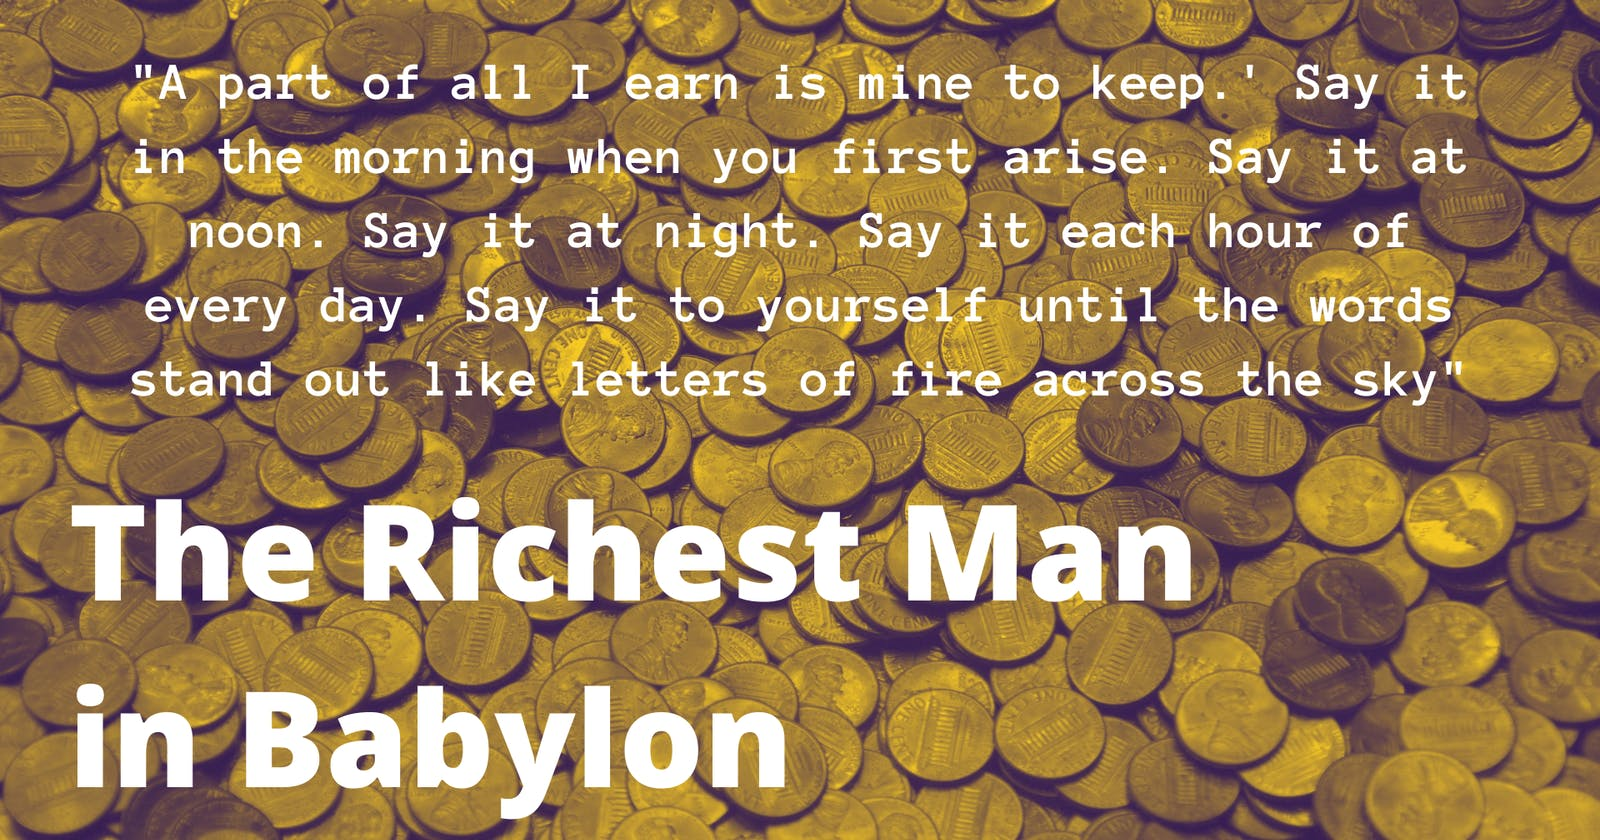 The Richest Man in Babylon at a Glance